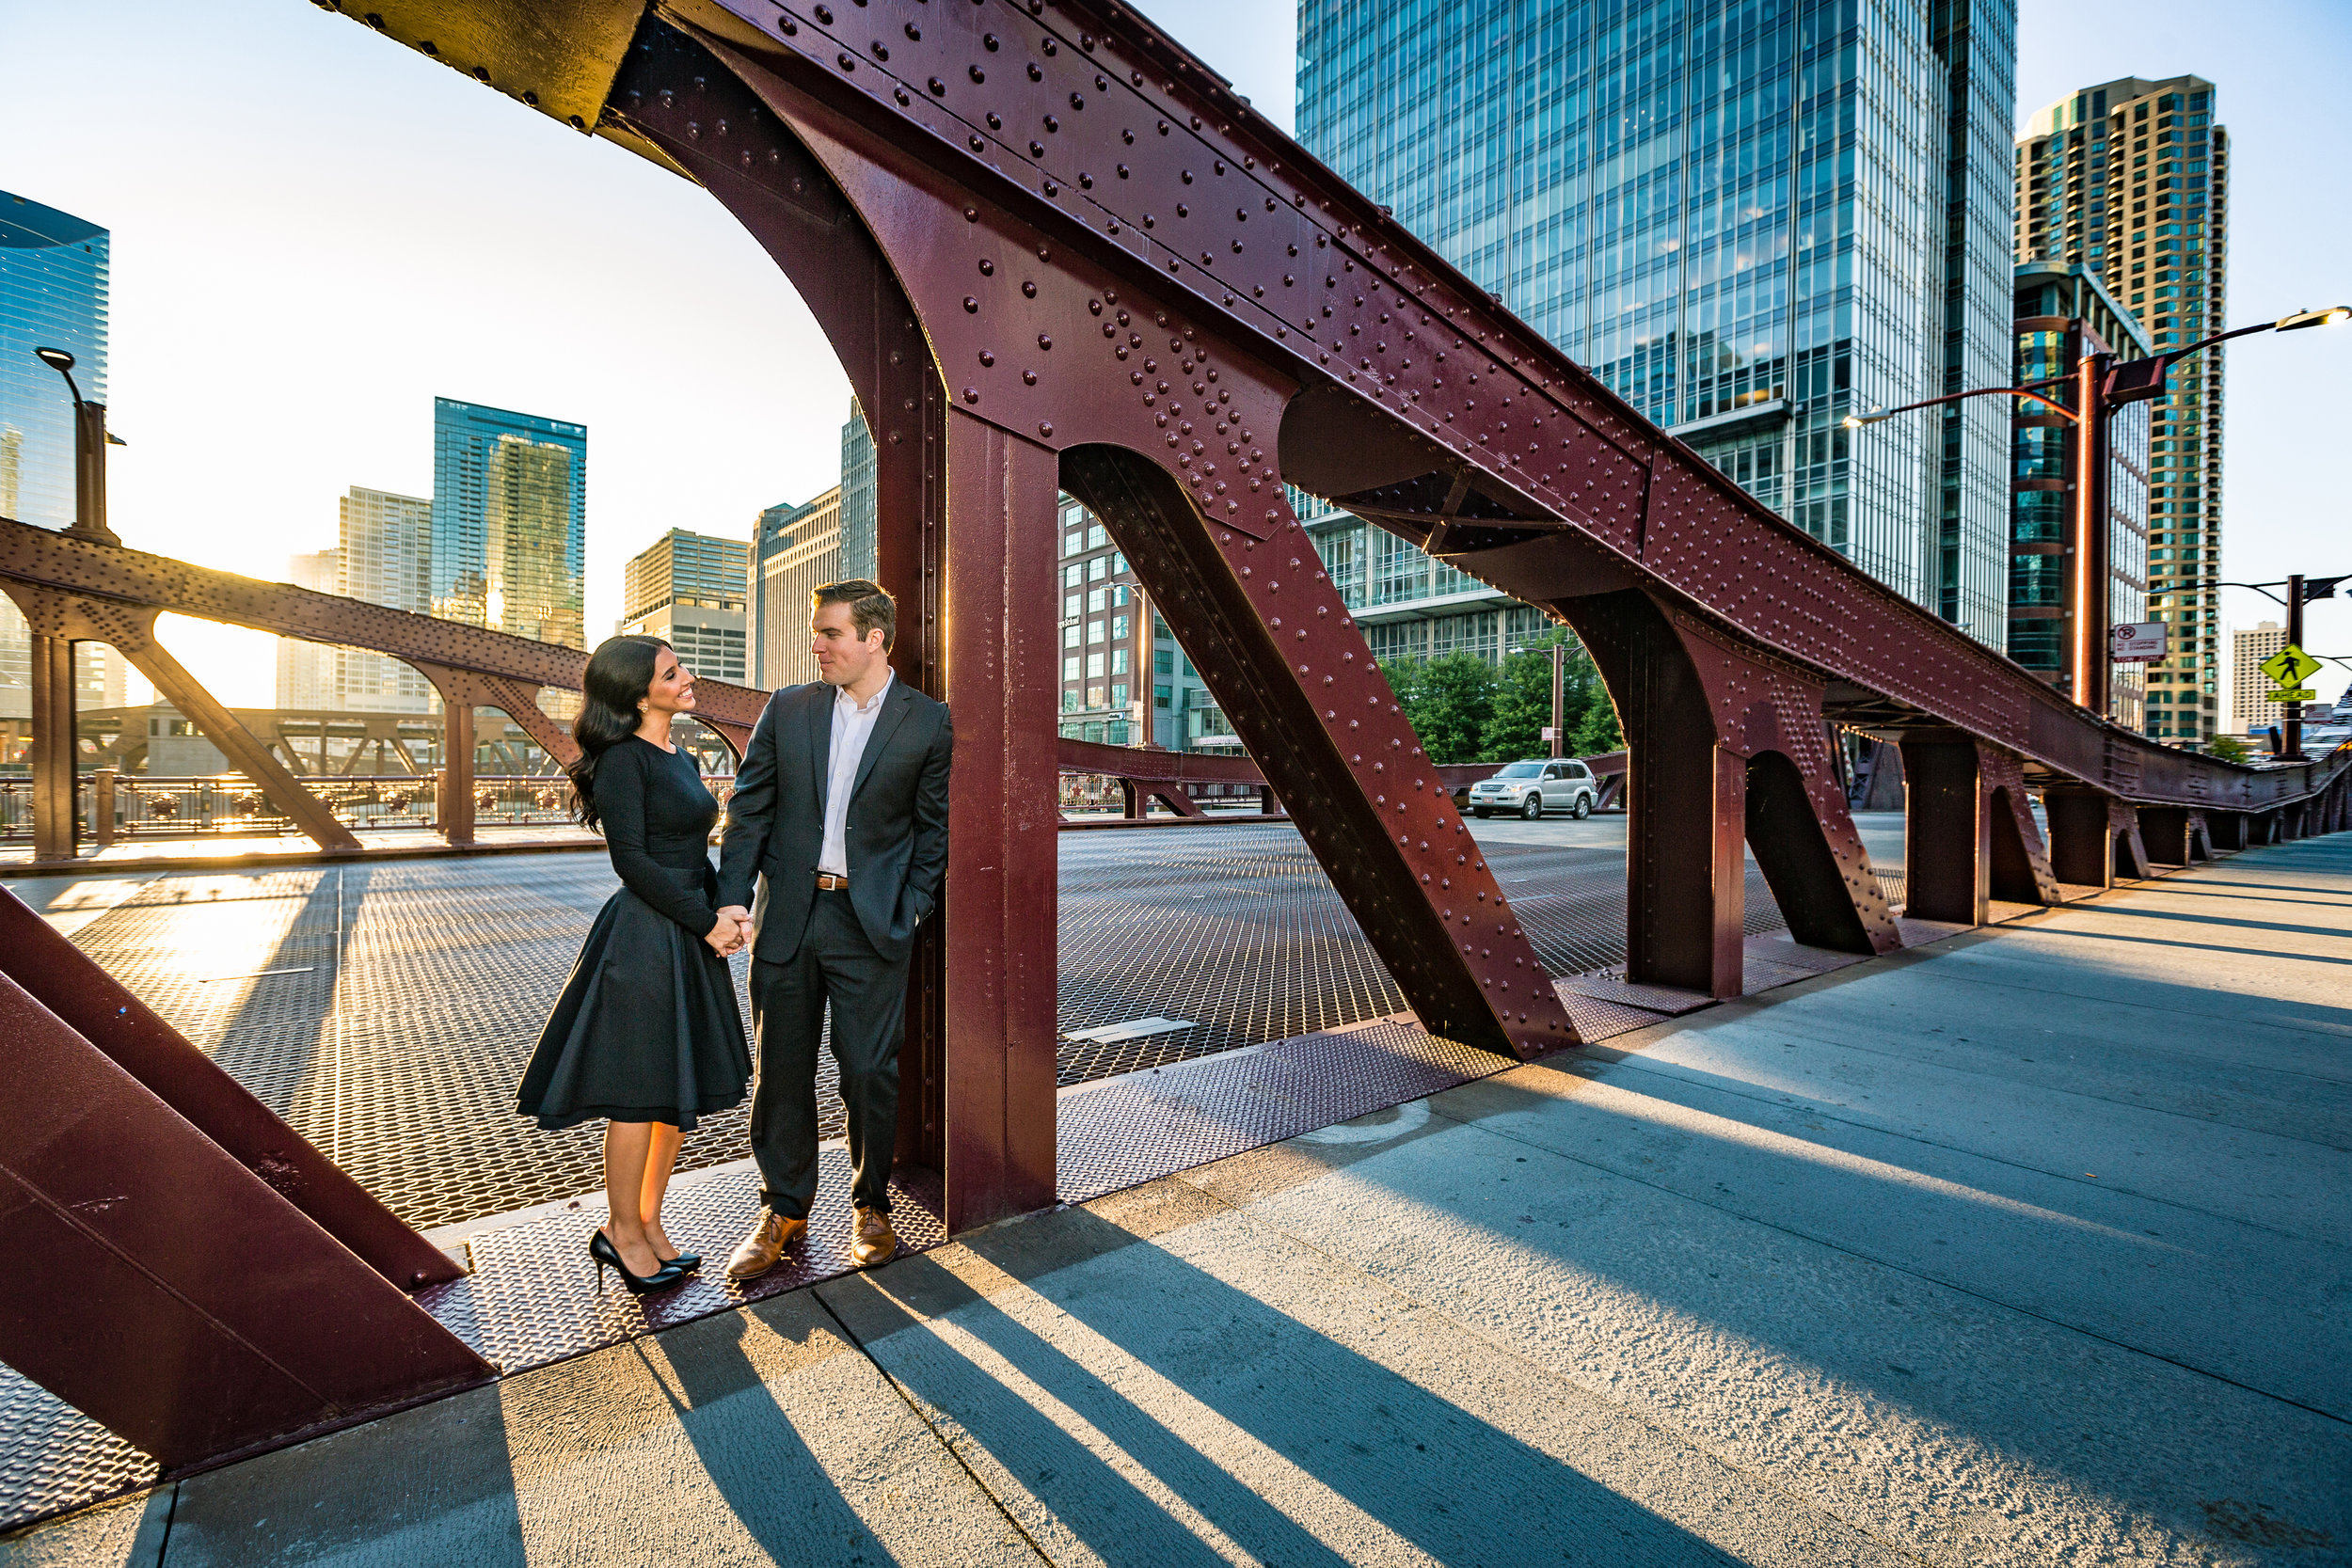 chicago engagement | Gabriella + Tom by Peer Canvas Photography & Films 060.JPG